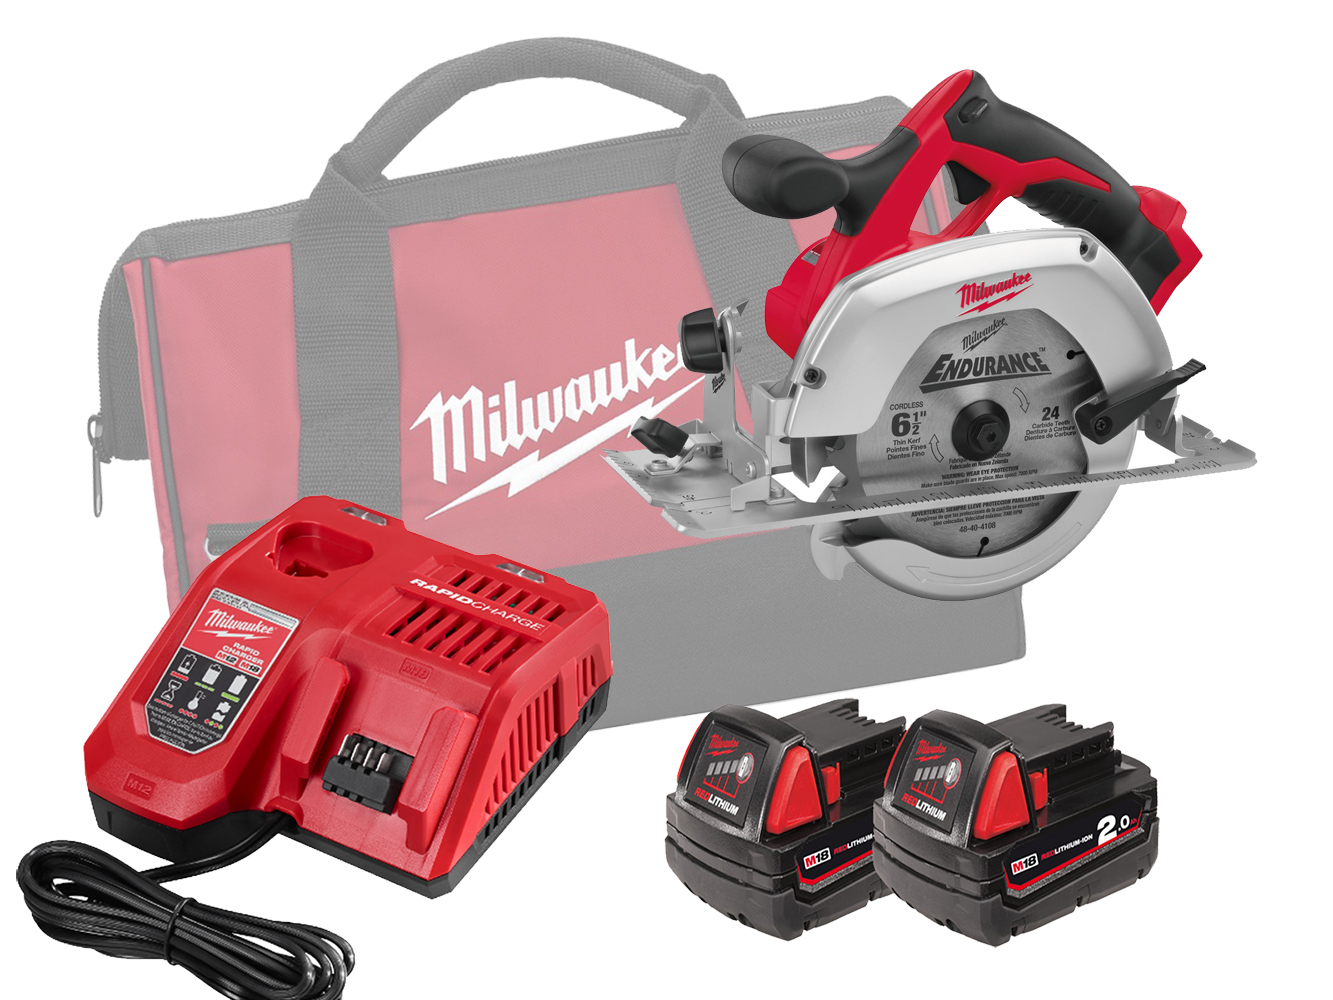 Milwaukee HD18CS 18V Heavy Duty 165mm (55mm) Circular Saw for Wood and Plastic - 2.0ah Pack